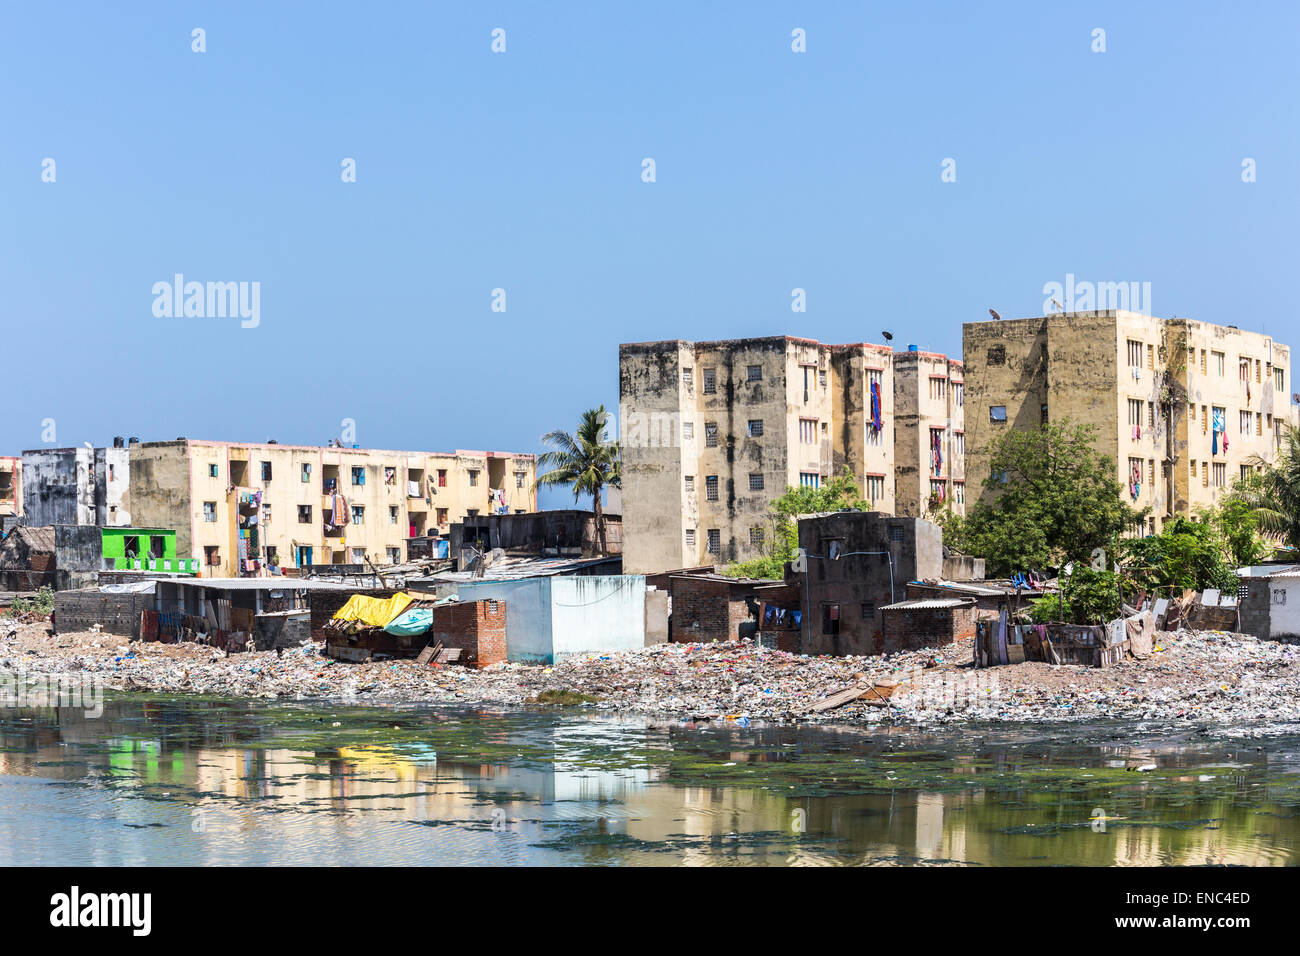 Third world poverty lifestyle: Slums and apartment blocks on the banks of the polluted Adyar River estuary in Chennai, - Stock Image